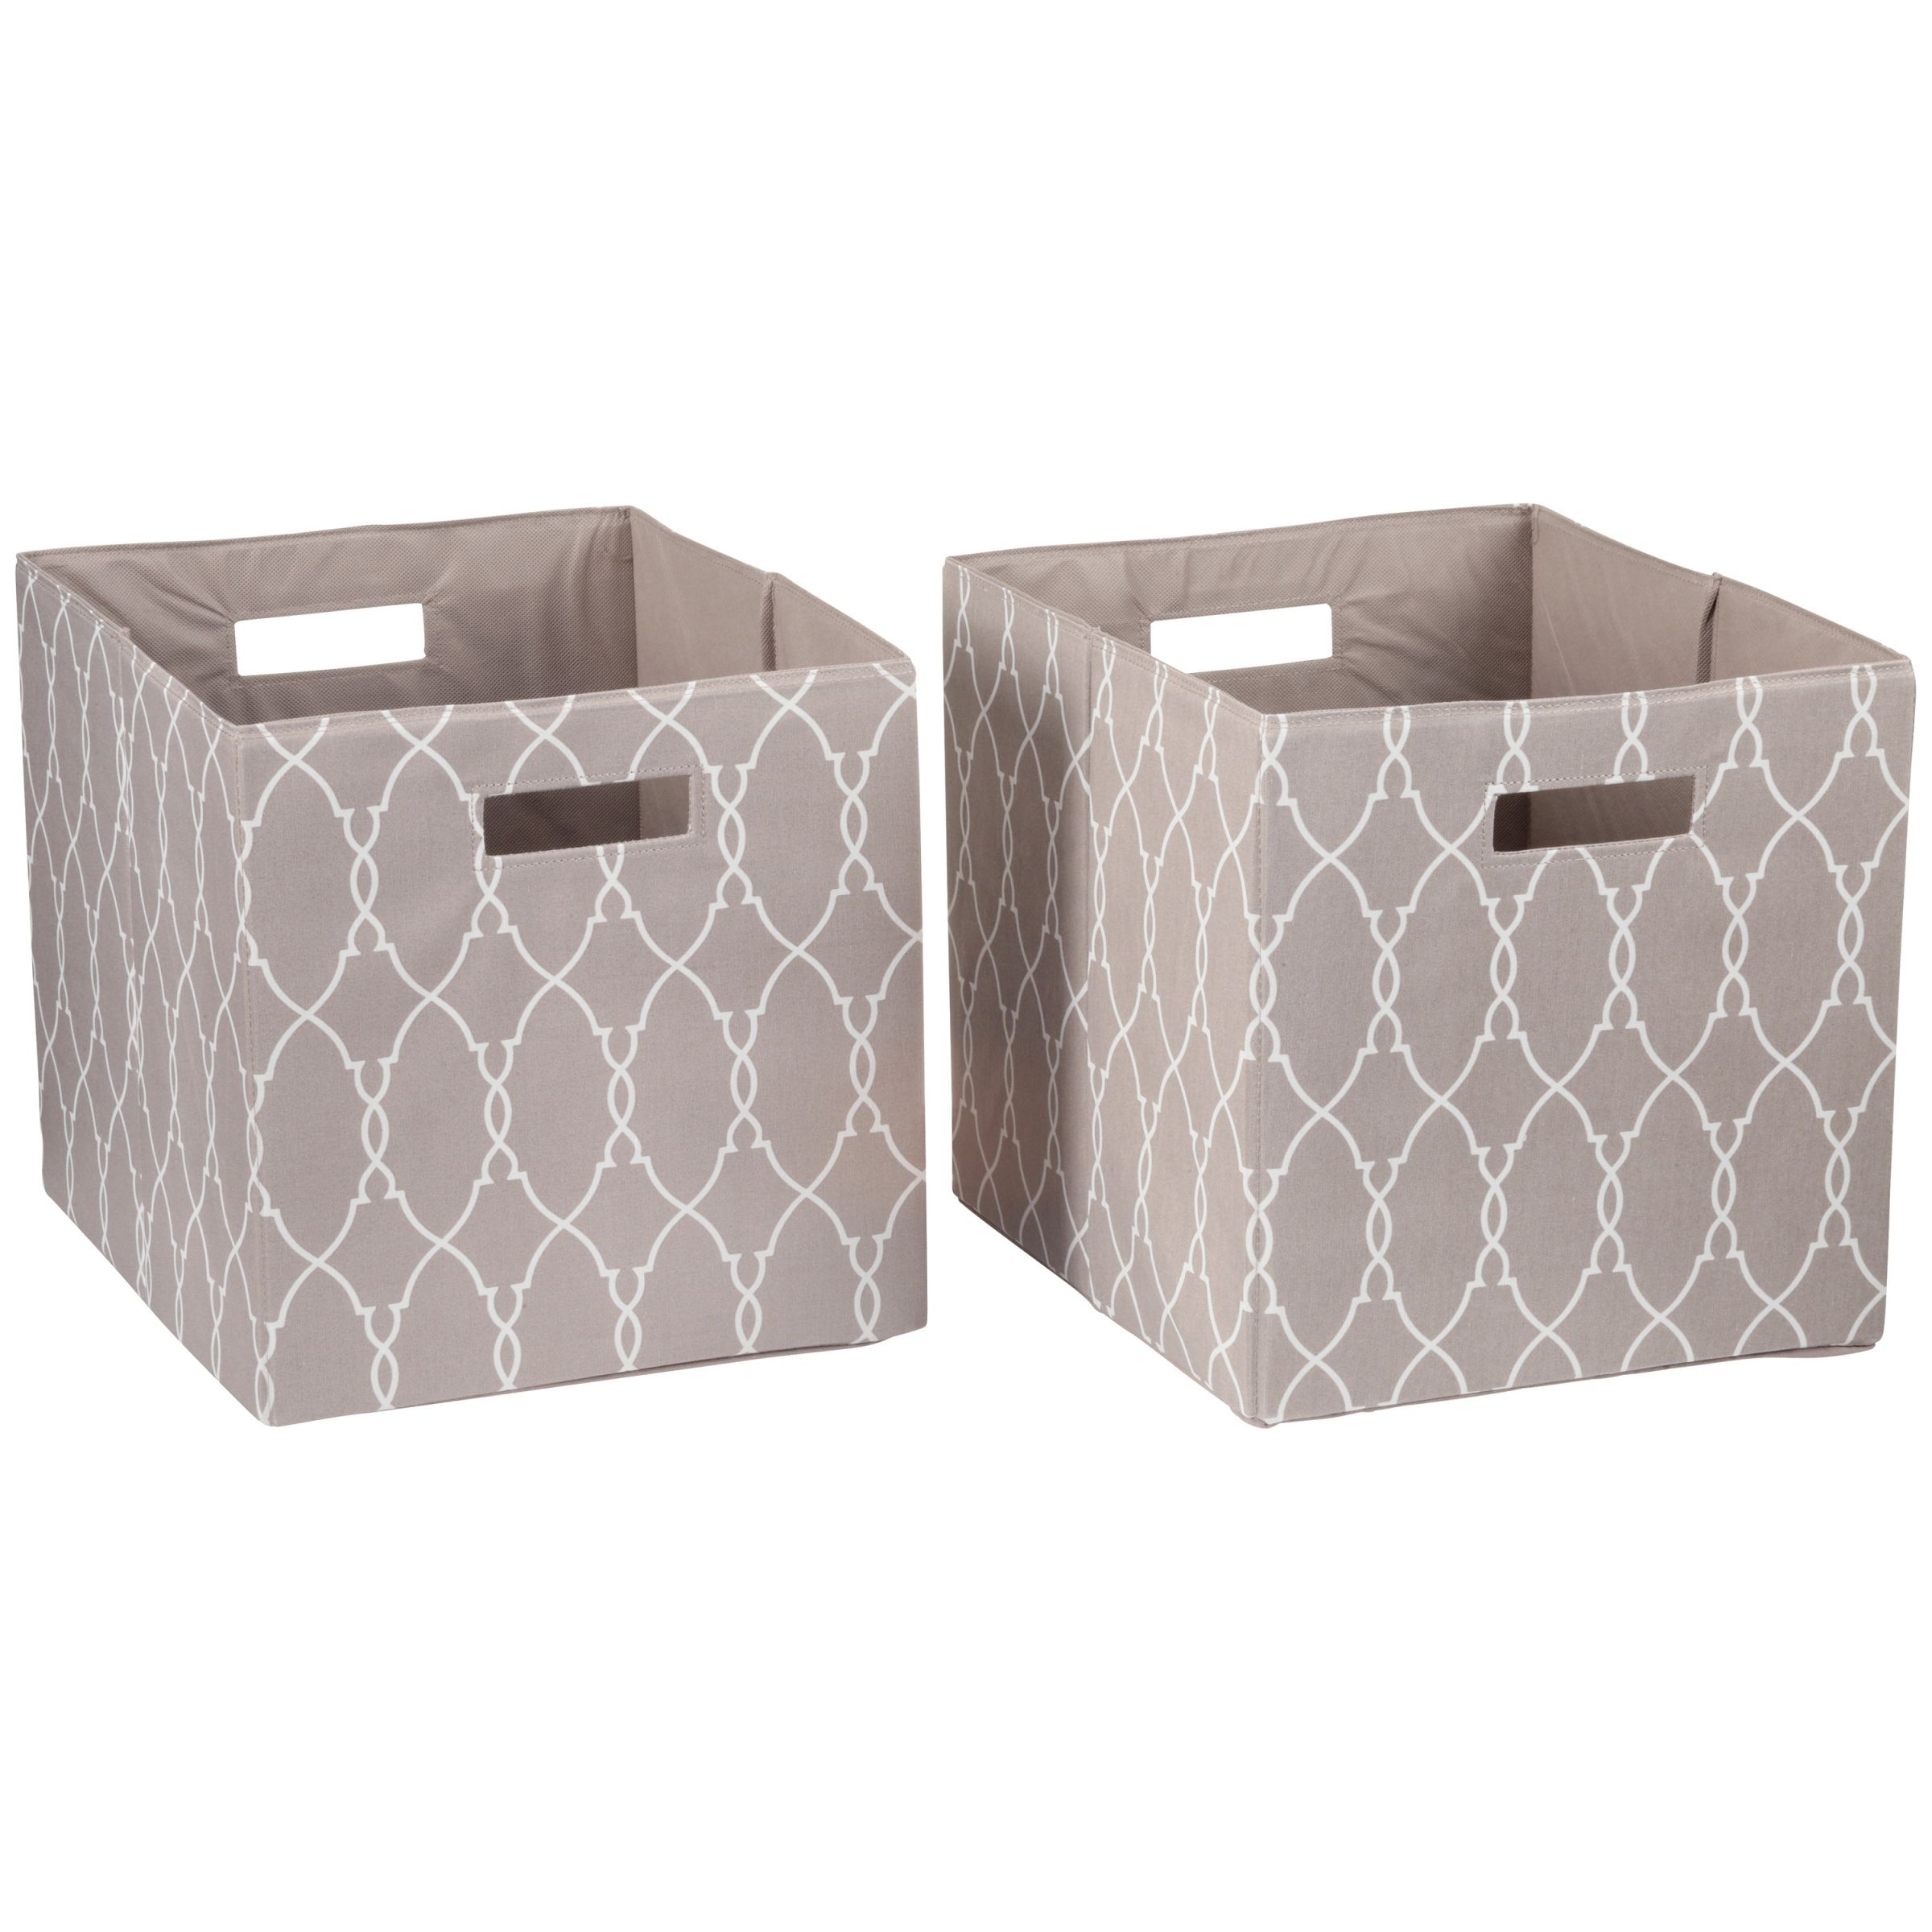 Pin By Allyson Peters On Current House Ideas Cube Storage Bins Fabric Storage Bins Cube Storage